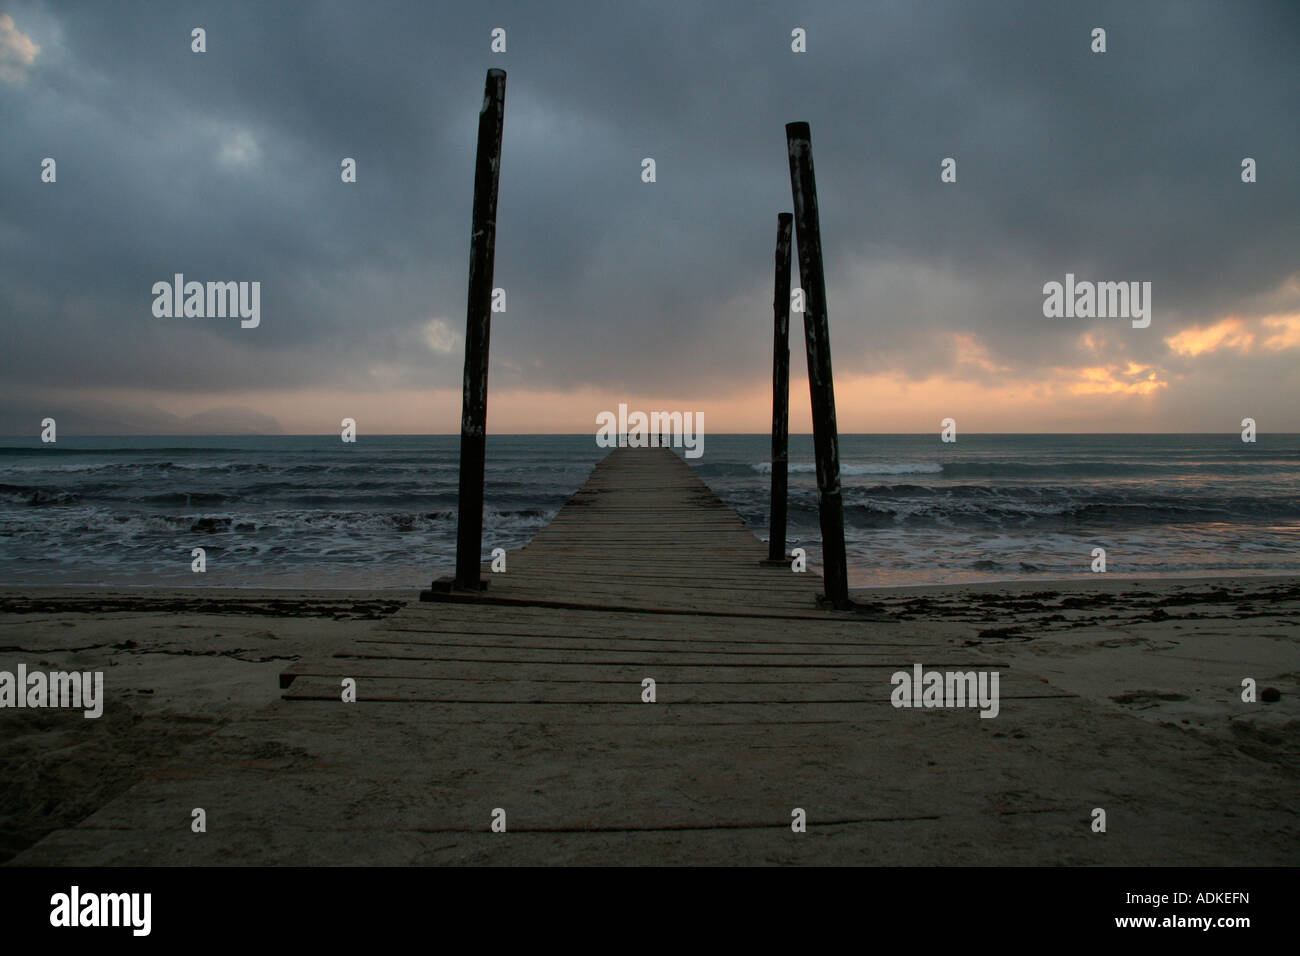 Pier in Alcudia, Mallorca on cloudy day - Stock Image